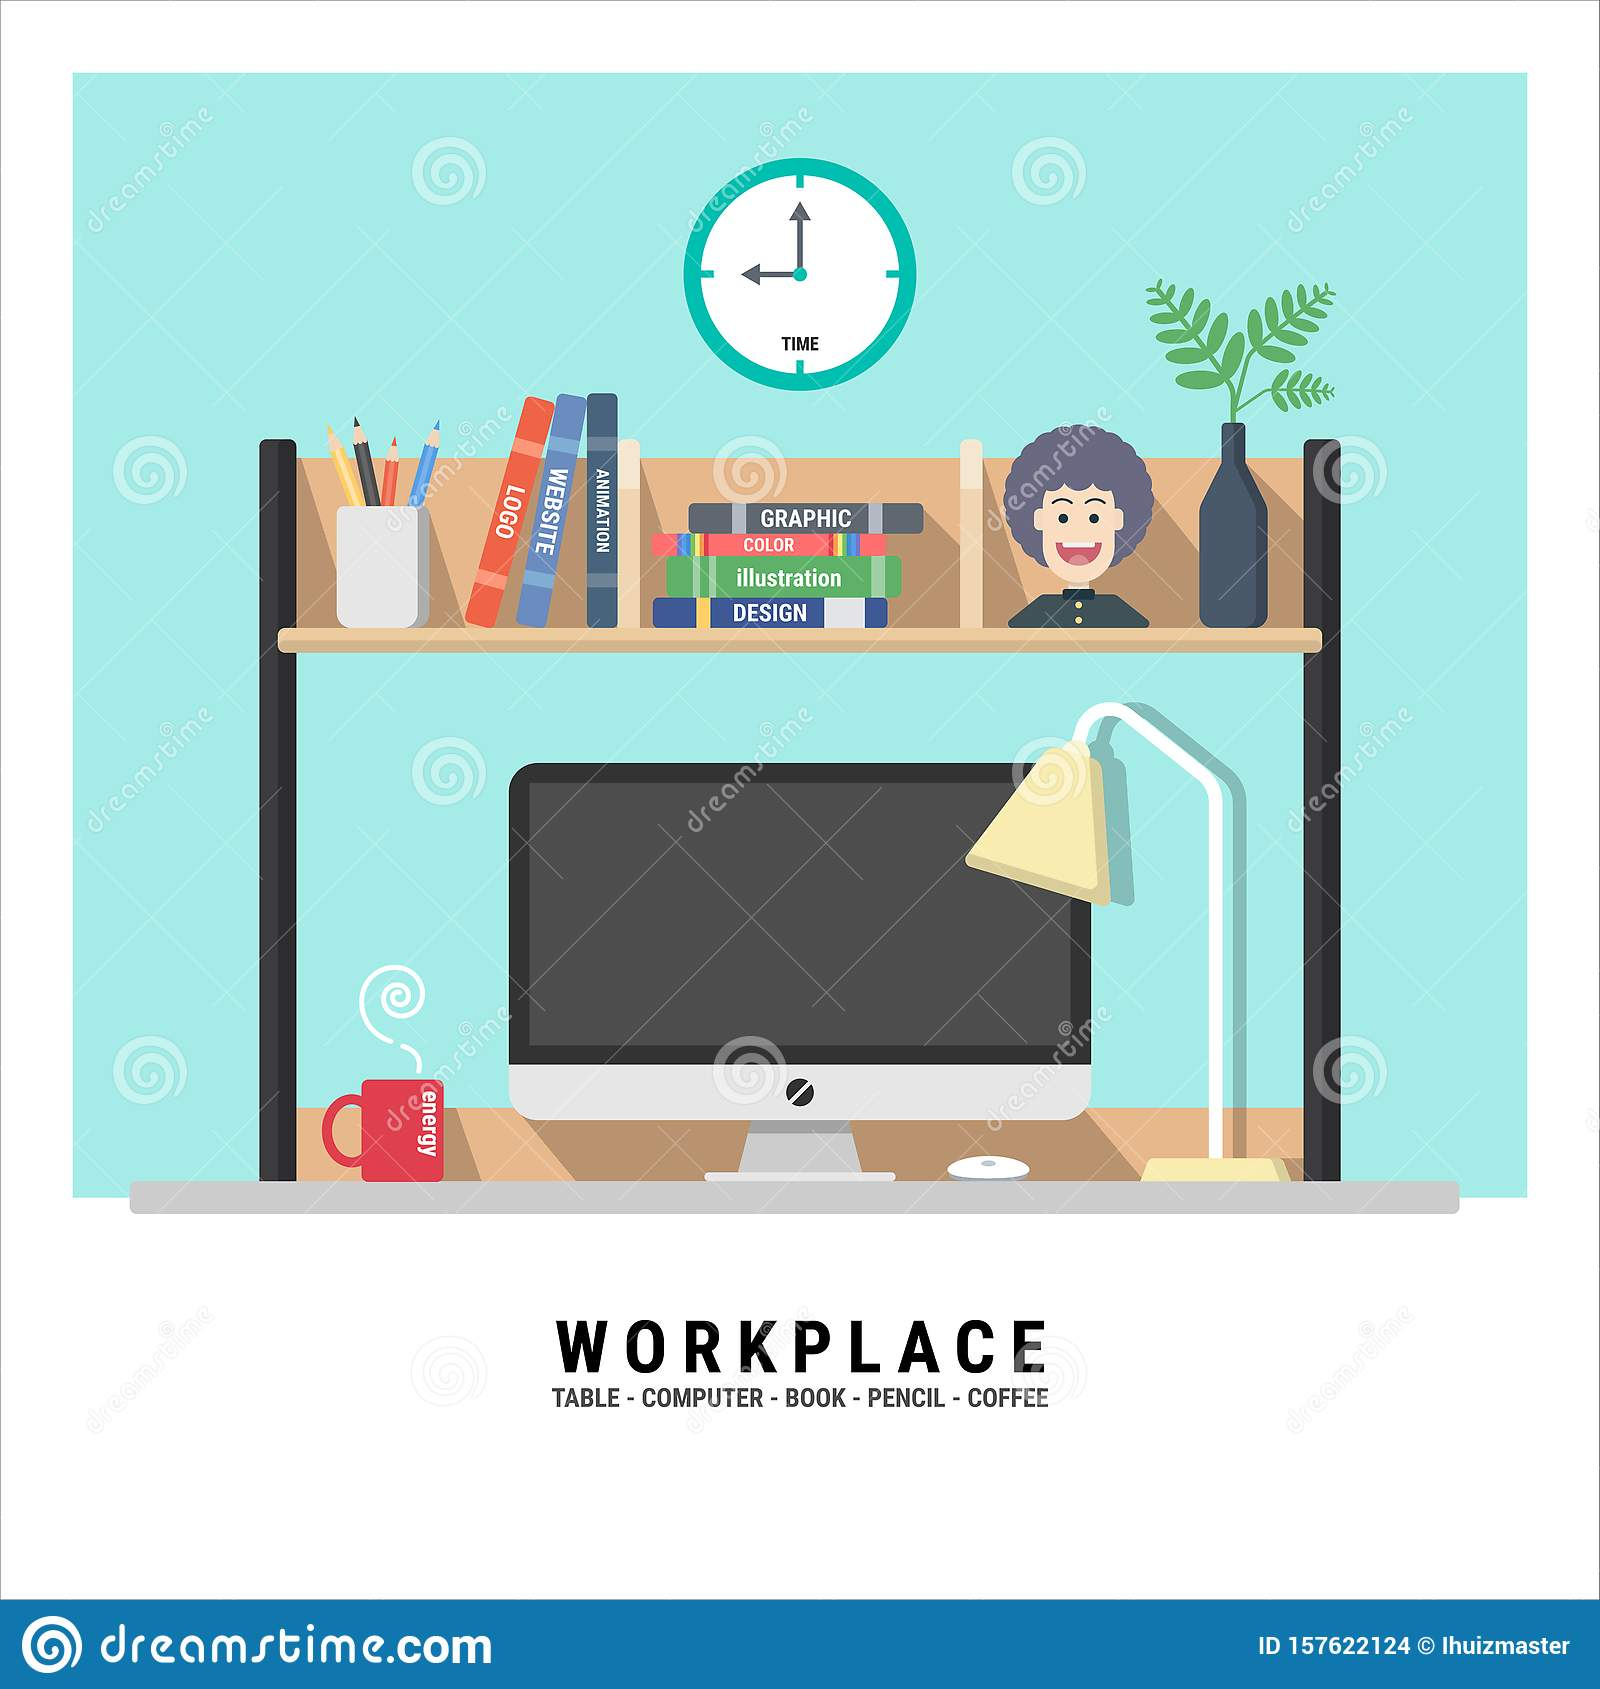 Real Happiness At Work PDF Free Download